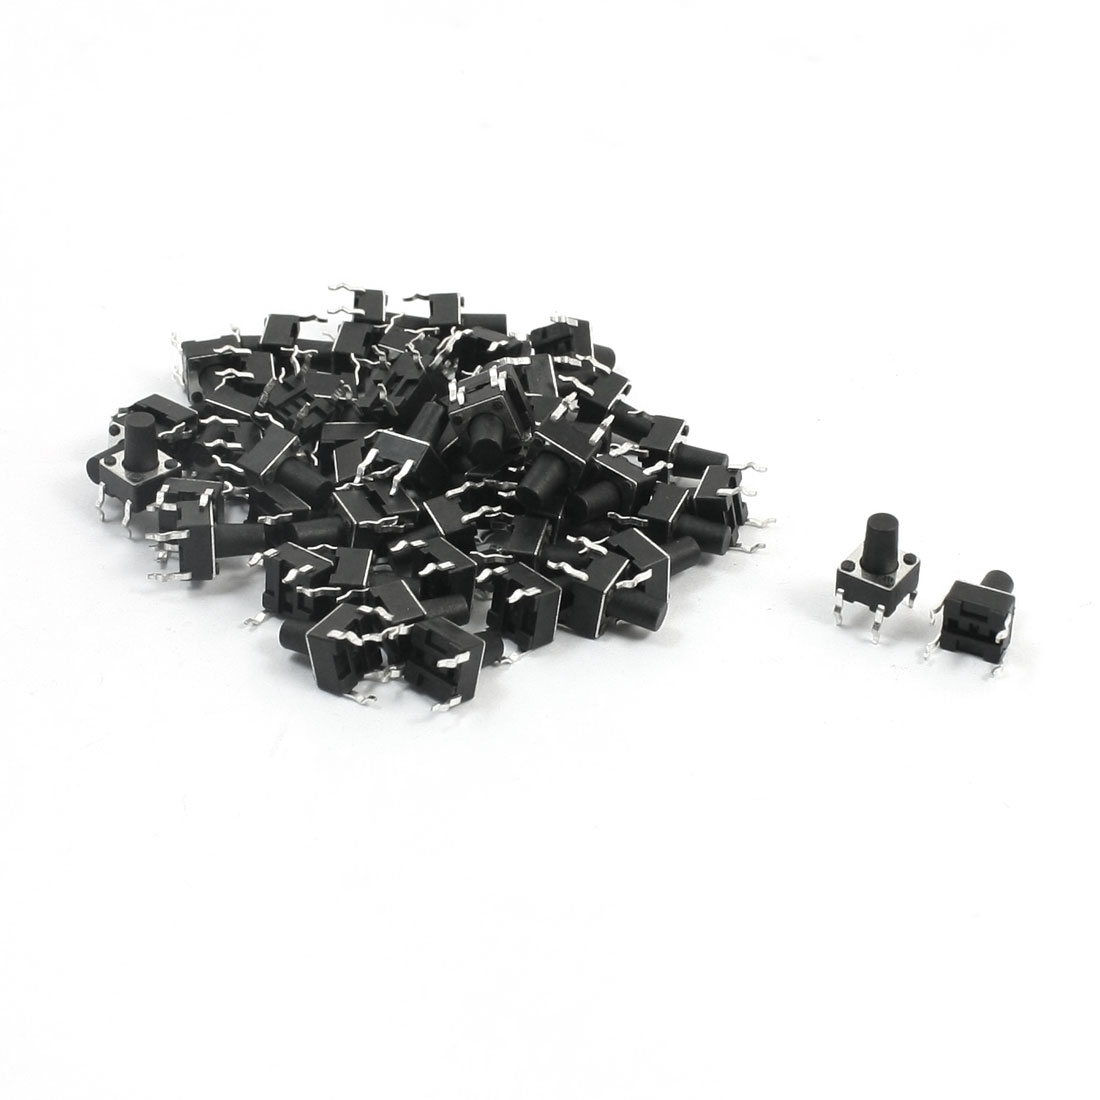 55Pcs Momentary PCB Pushbutton Push Button Tact Tactile Switch DIP 6mmx6mmx8.5mm